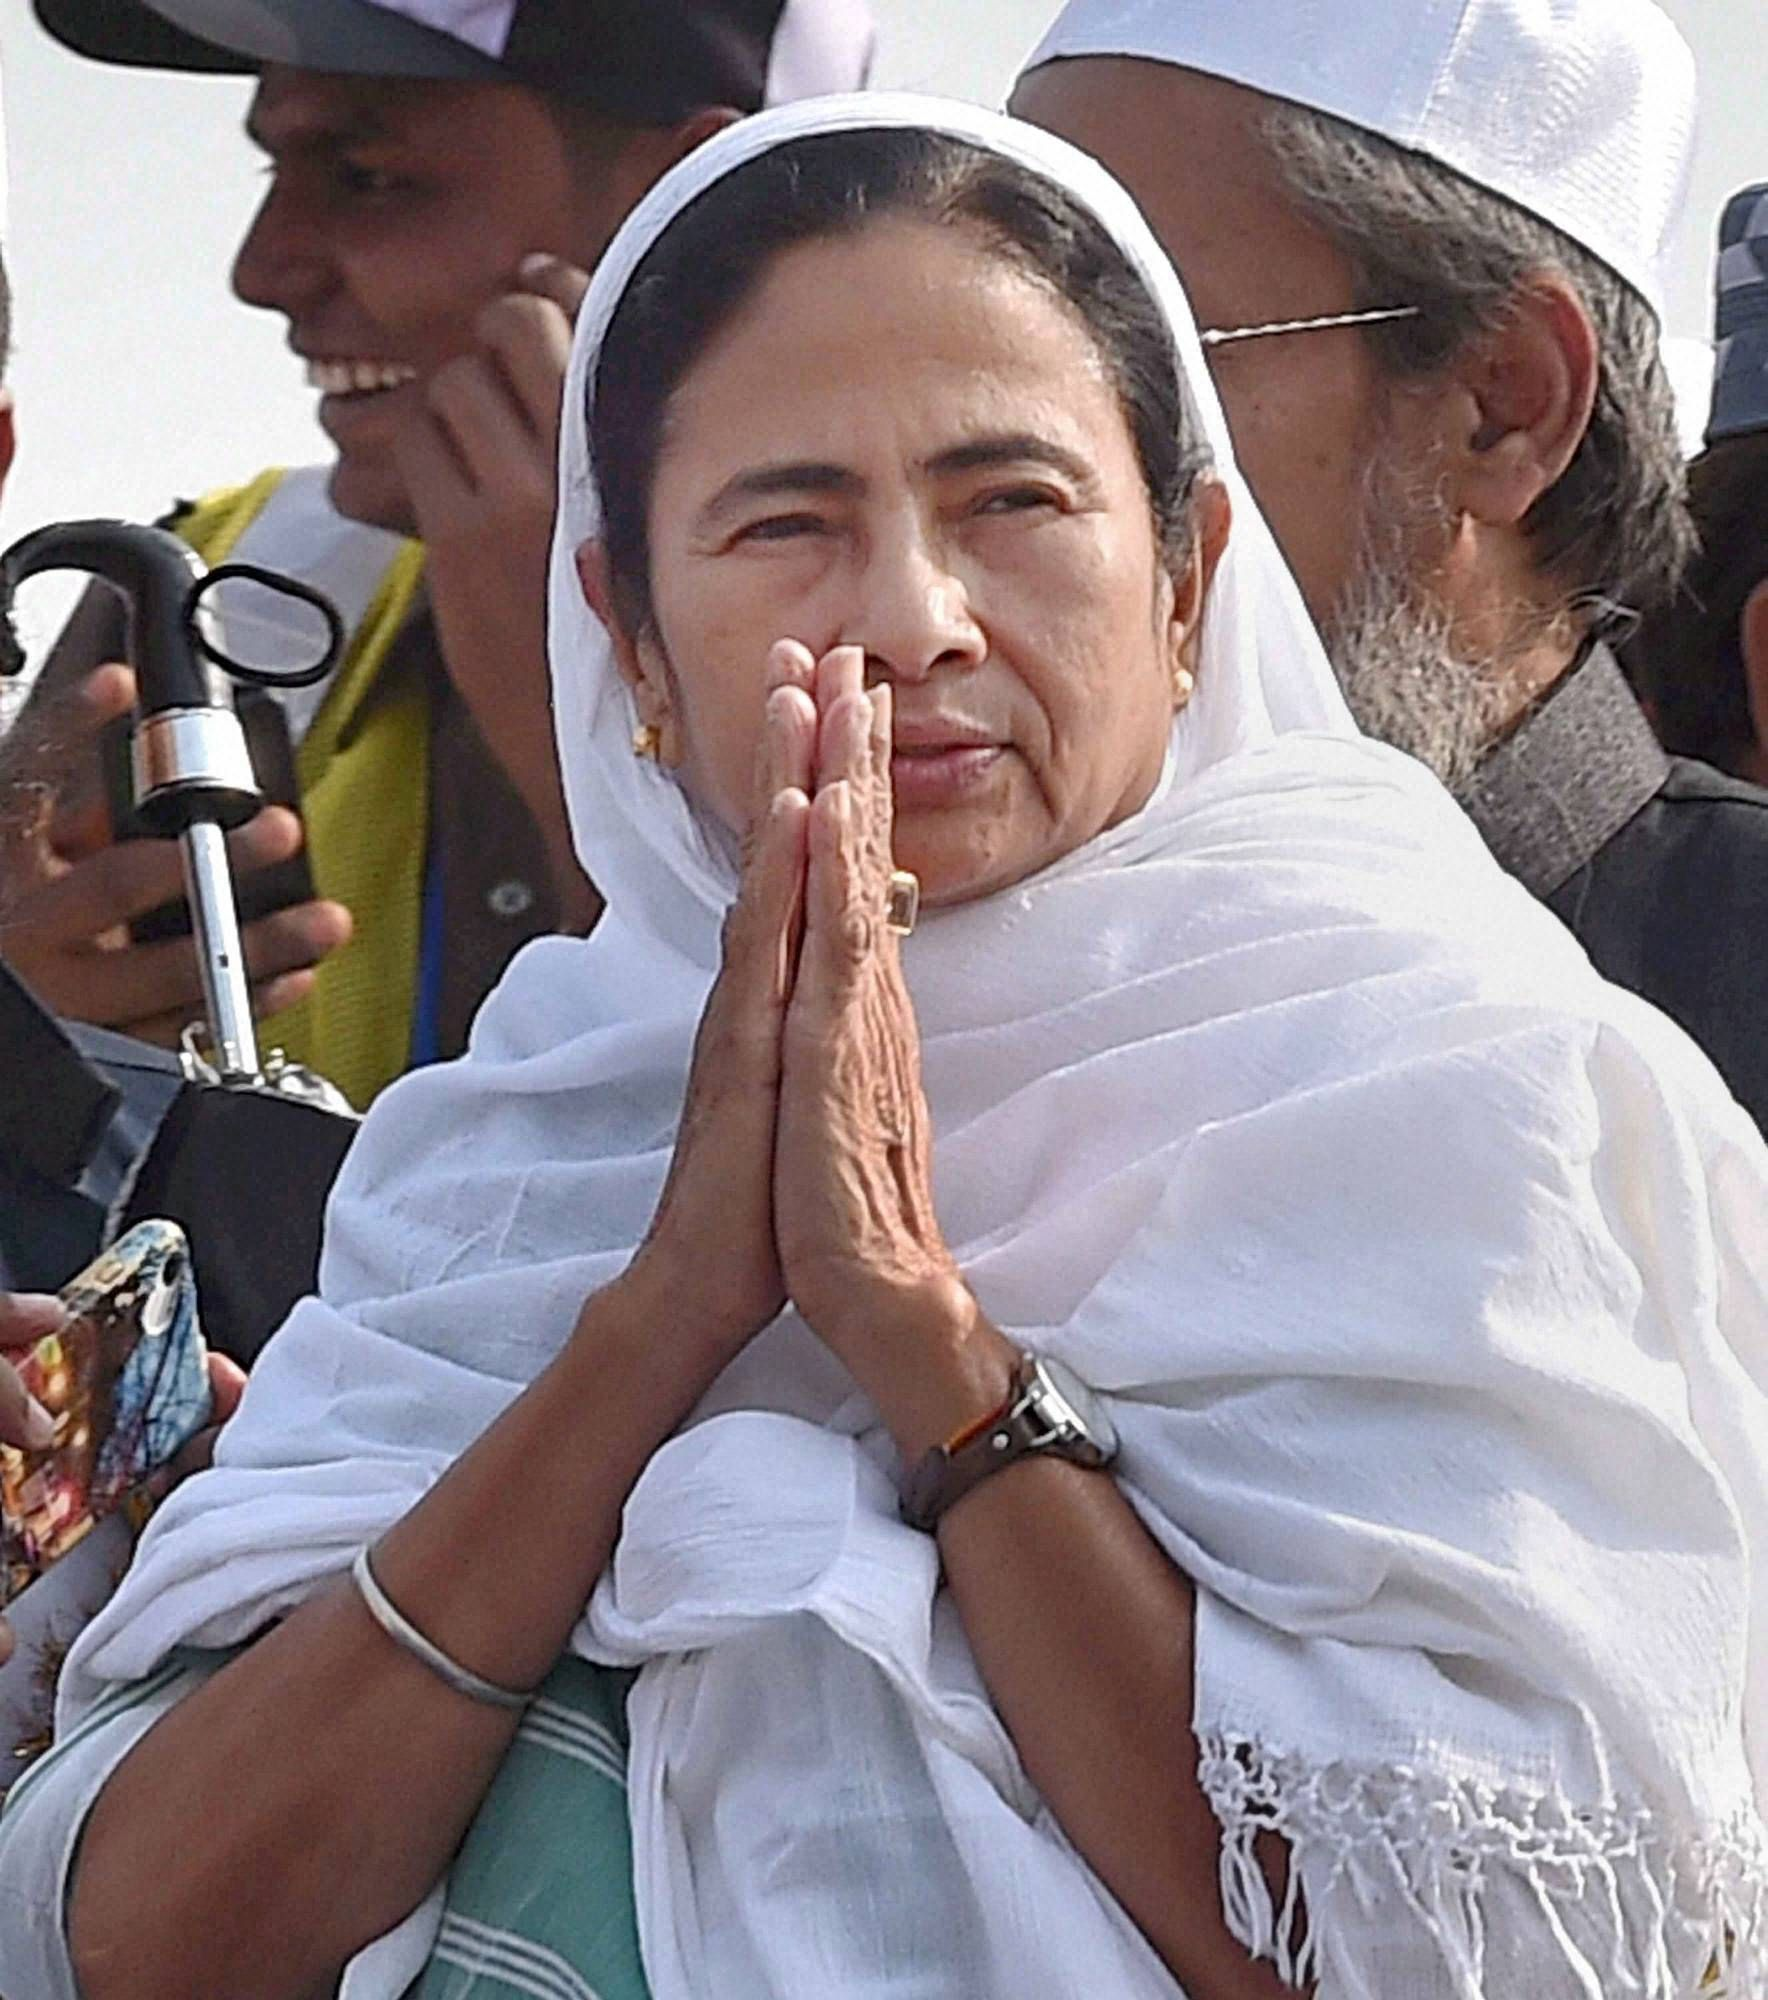 Will agitate against mamata banerjee for attacking our workers bjp the indian express - West Bengal Chief Minister Mamata Banerjee On Thursday Targeted The Centre For The Growing Intolerance In